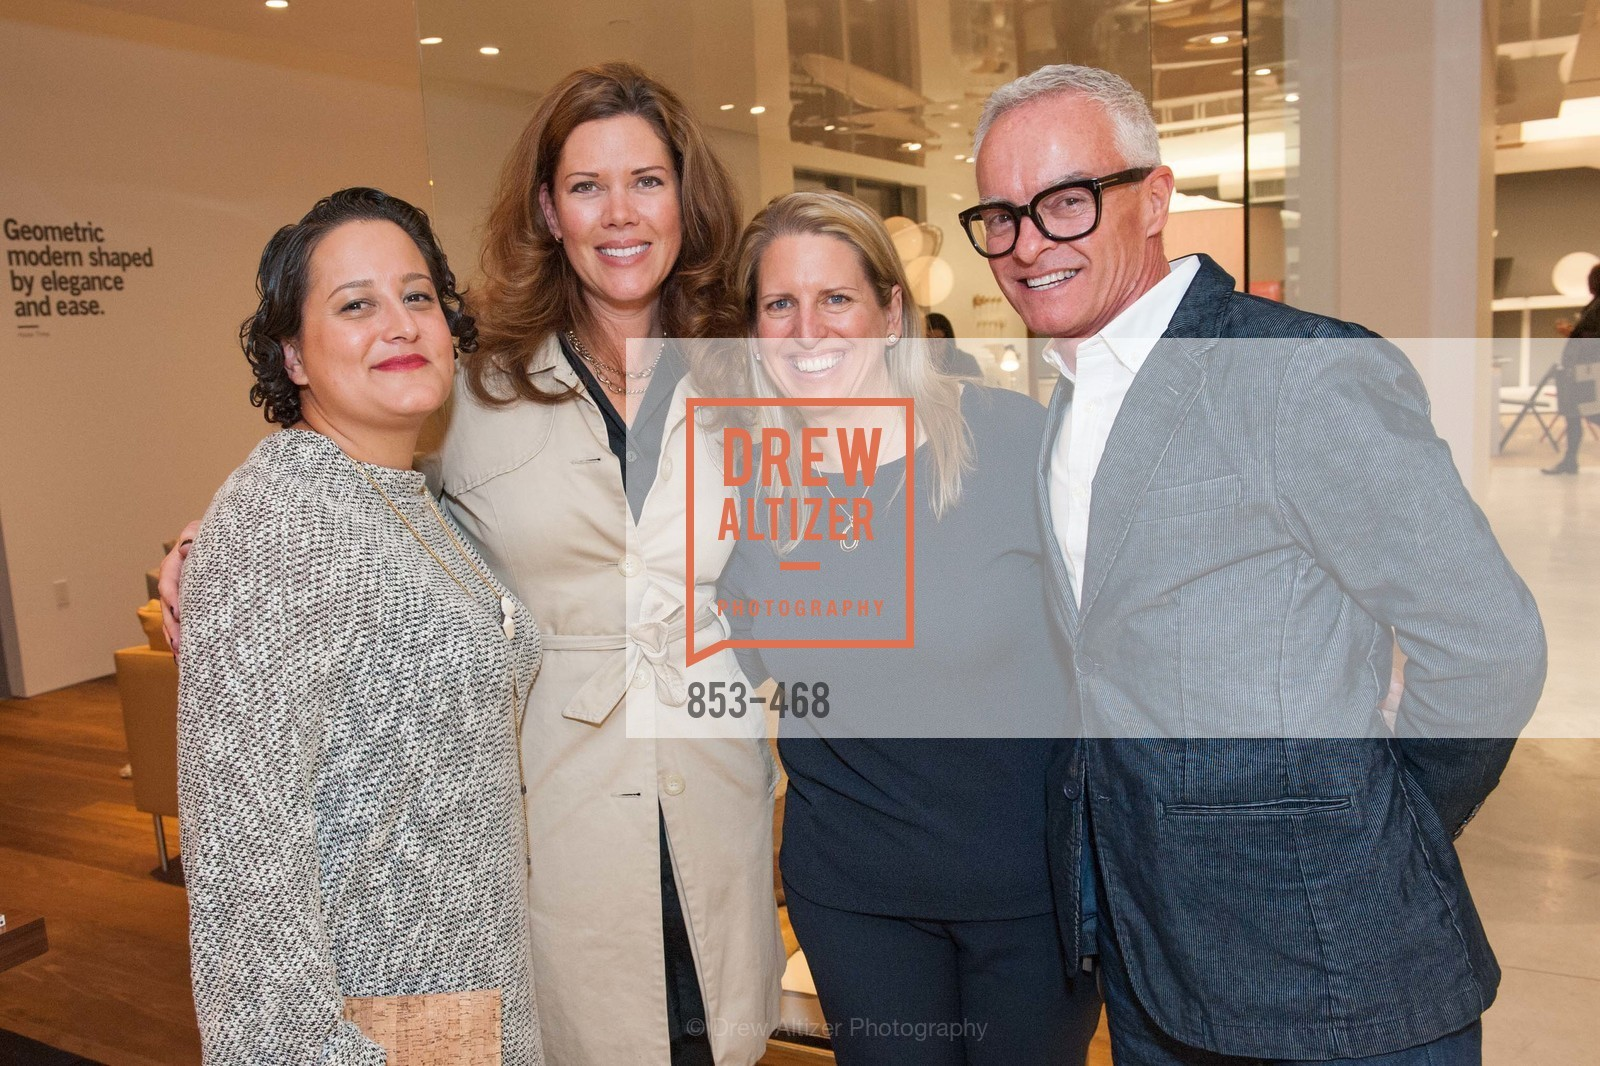 Suzanne Rasic, Andrea Seltis, Kelly McGrath, Scott Manha, DESIGN WITHIN REACH Studio Opening, US. US, January 21st, 2014,Drew Altizer, Drew Altizer Photography, full-service agency, private events, San Francisco photographer, photographer california